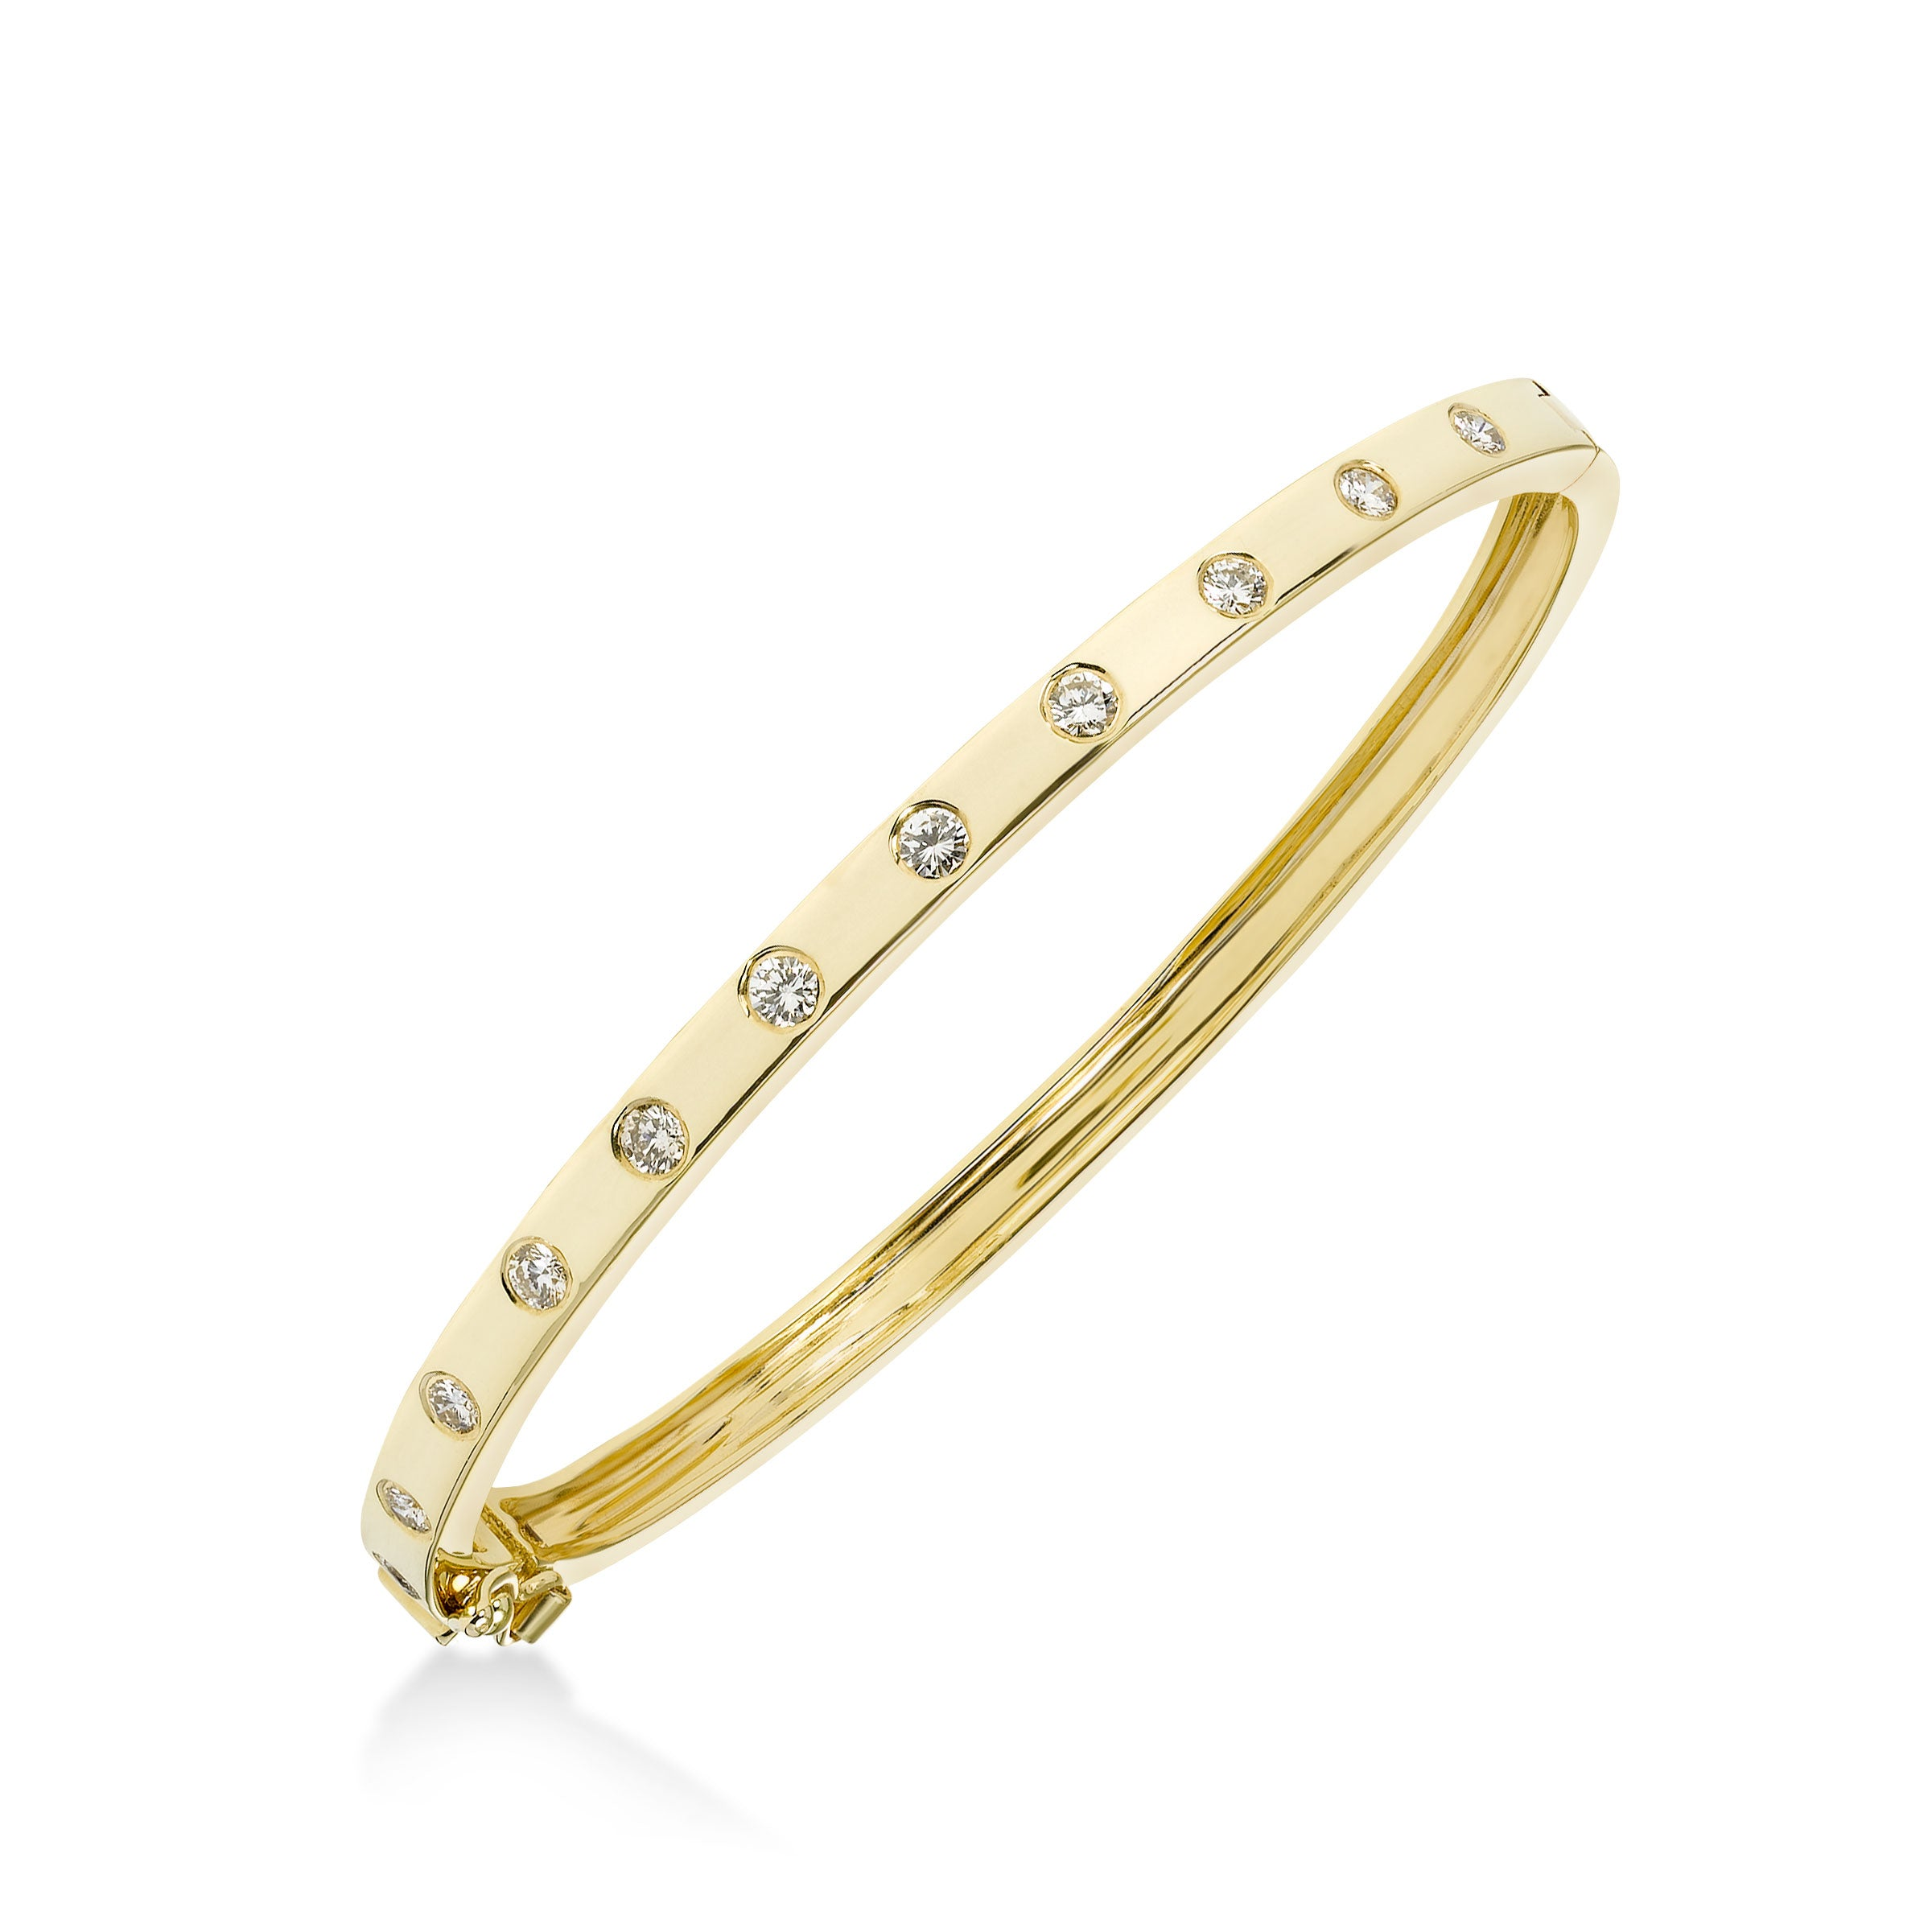 Flush Set Diamond Bangle Bracelet, 14K Yellow Gold